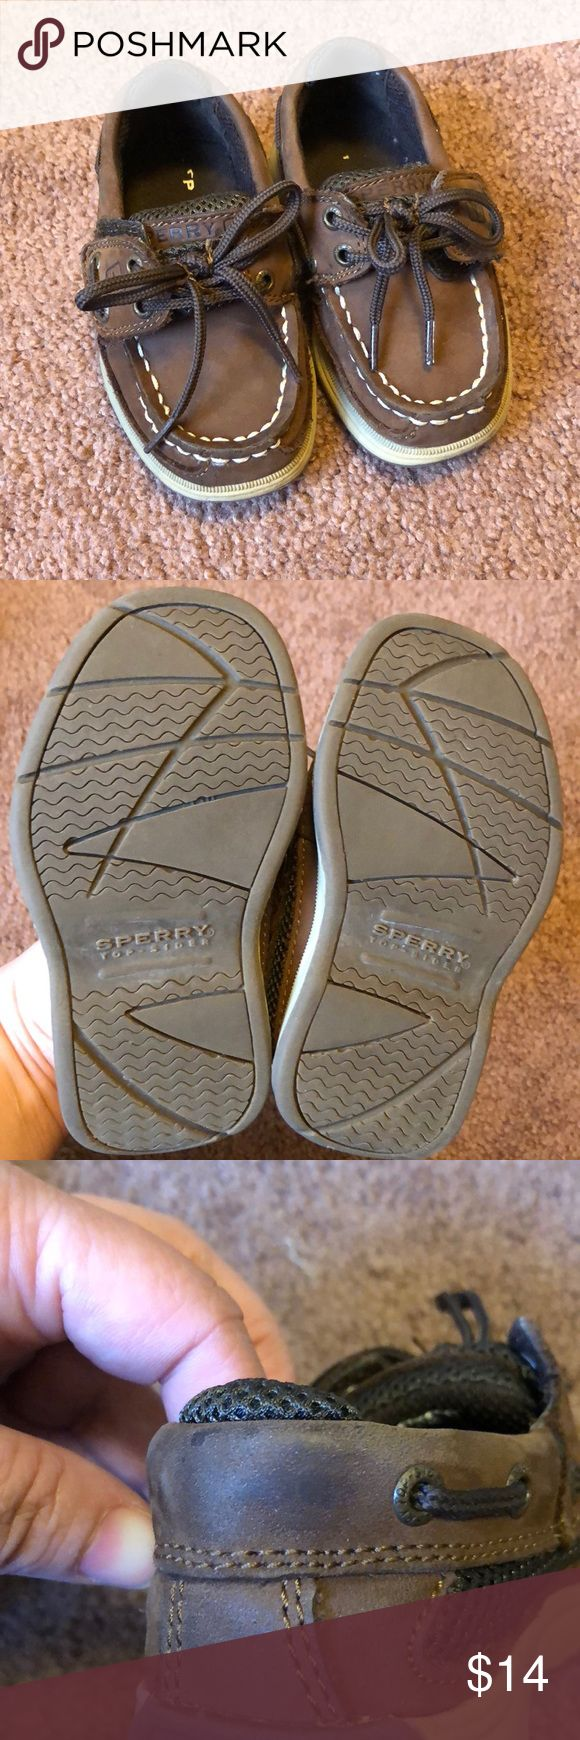 "Toddler Sperry's Toddlers Sperry Top-Siders. EUC - no stains or rips. One small spot on the back left shoe (3rd pic) but may come off.. it's barely noticeable. Velcro ""laces"" makes it super easy to get on & off. Smoke free home Sperry Top-Sider Shoes"